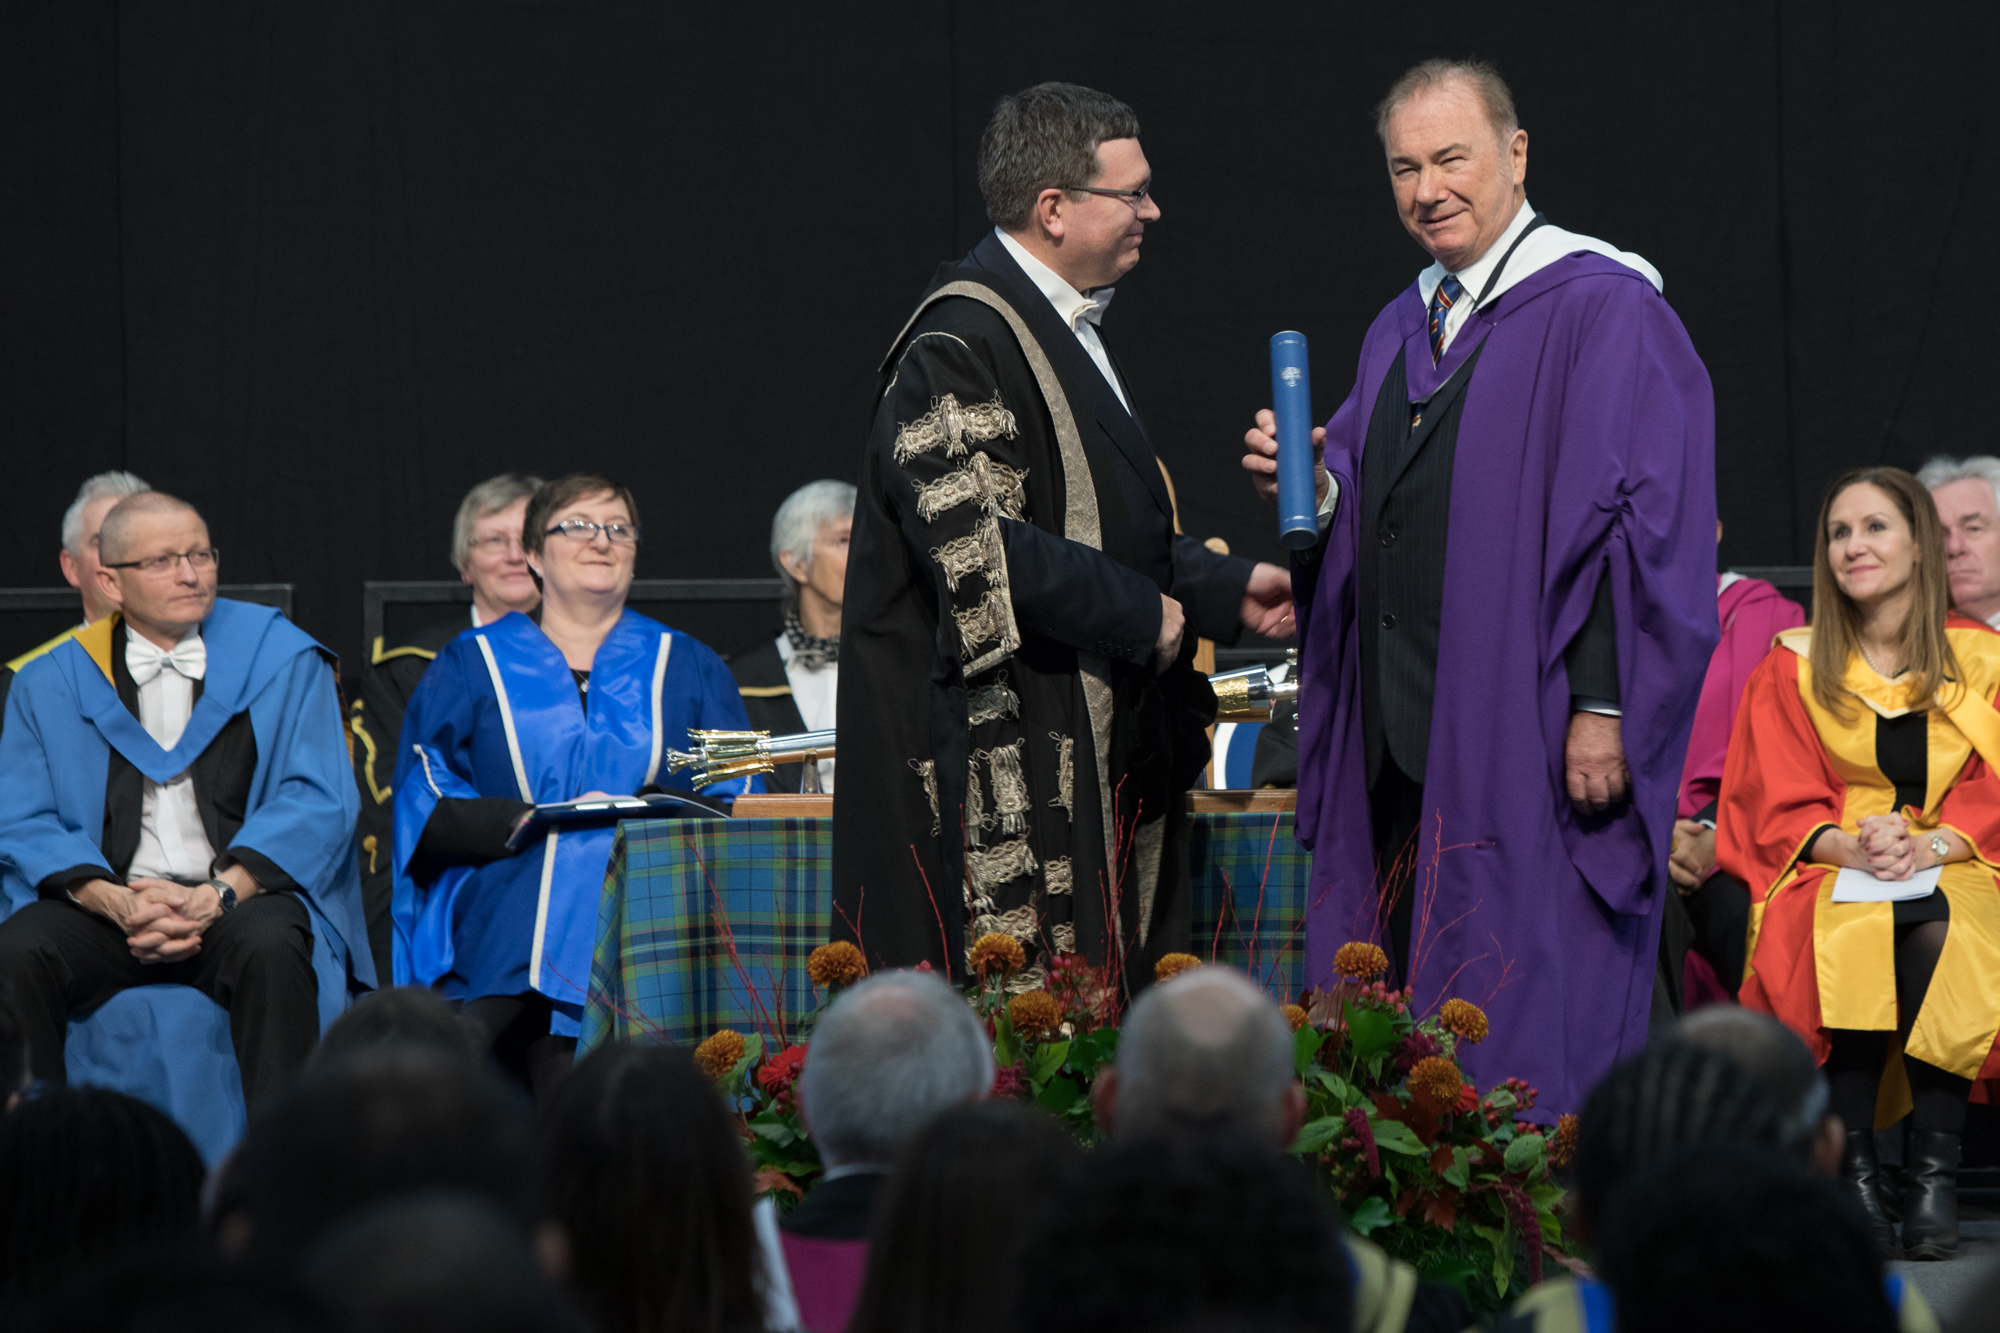 Professor David Teece receives his award from Heriot-Watt University Principal and Vice-Chancellor, Professor Richard Williams OBE.